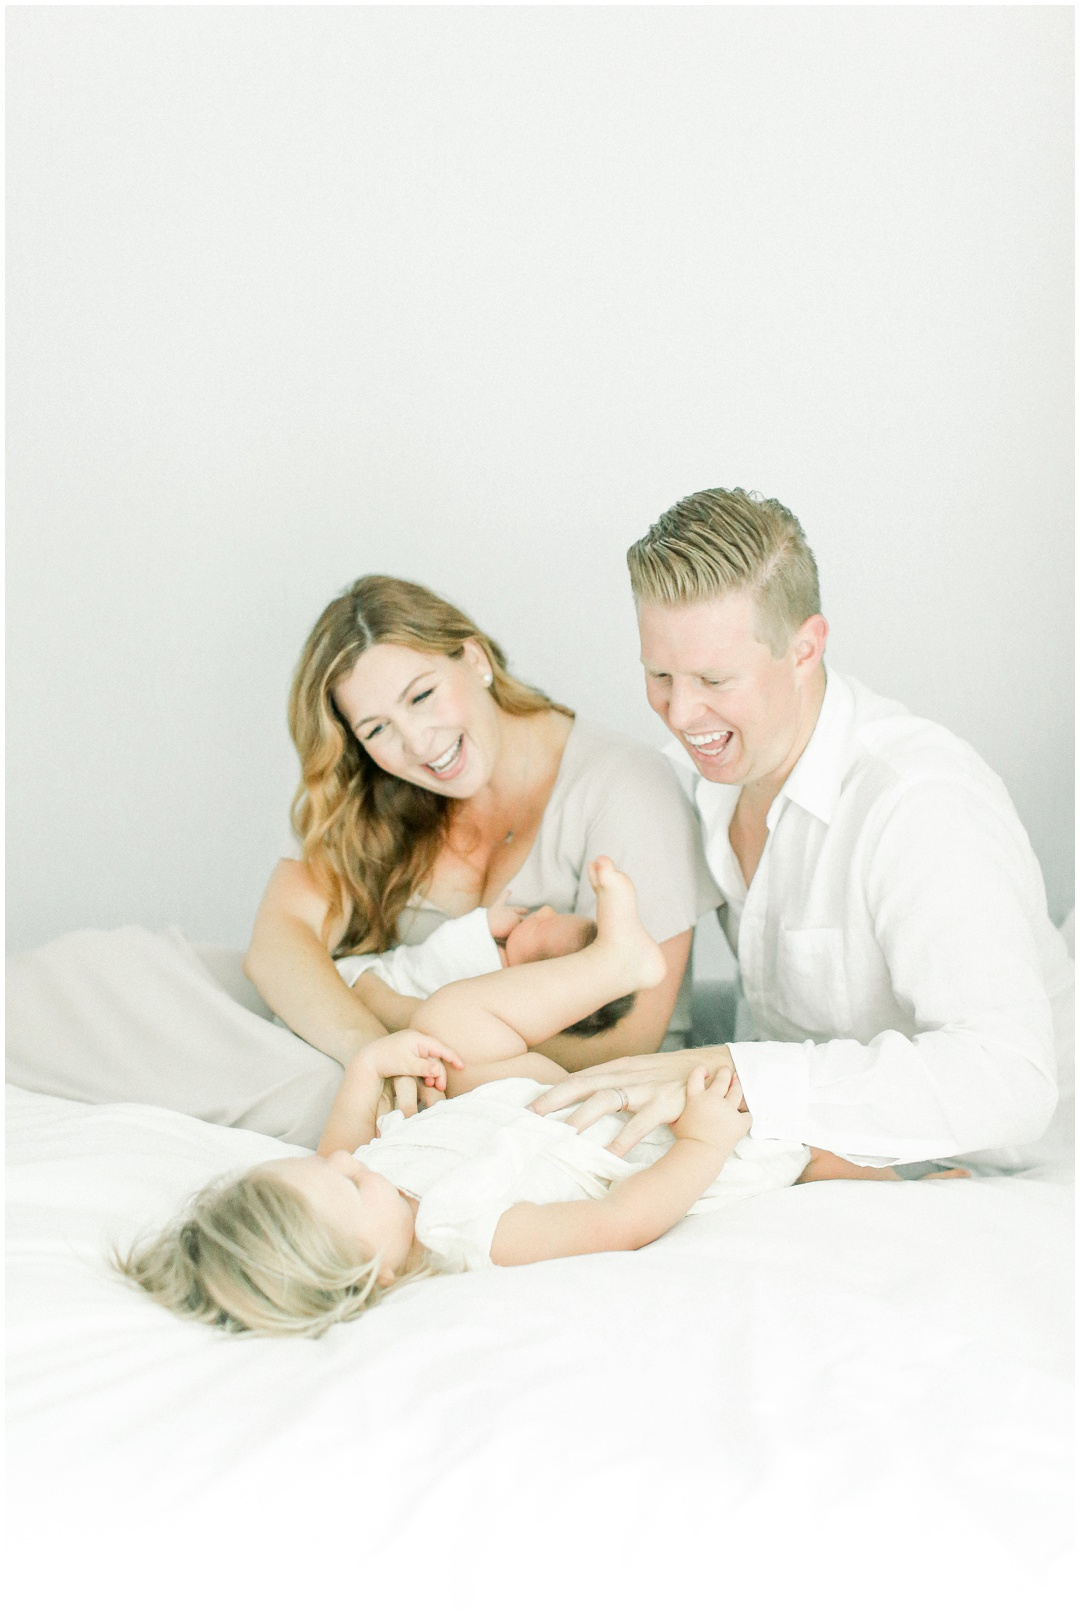 Newport_Beach_Newborn_Light_Airy_Natural_Photographer_Newport_Beach_Photographer_Orange_County_Family_Photographer_Cori_Kleckner_Photography_Newport_Beach_Photographer_Blaire_Baker_Brett_Baker_Caroline_Baker__3941.jpg